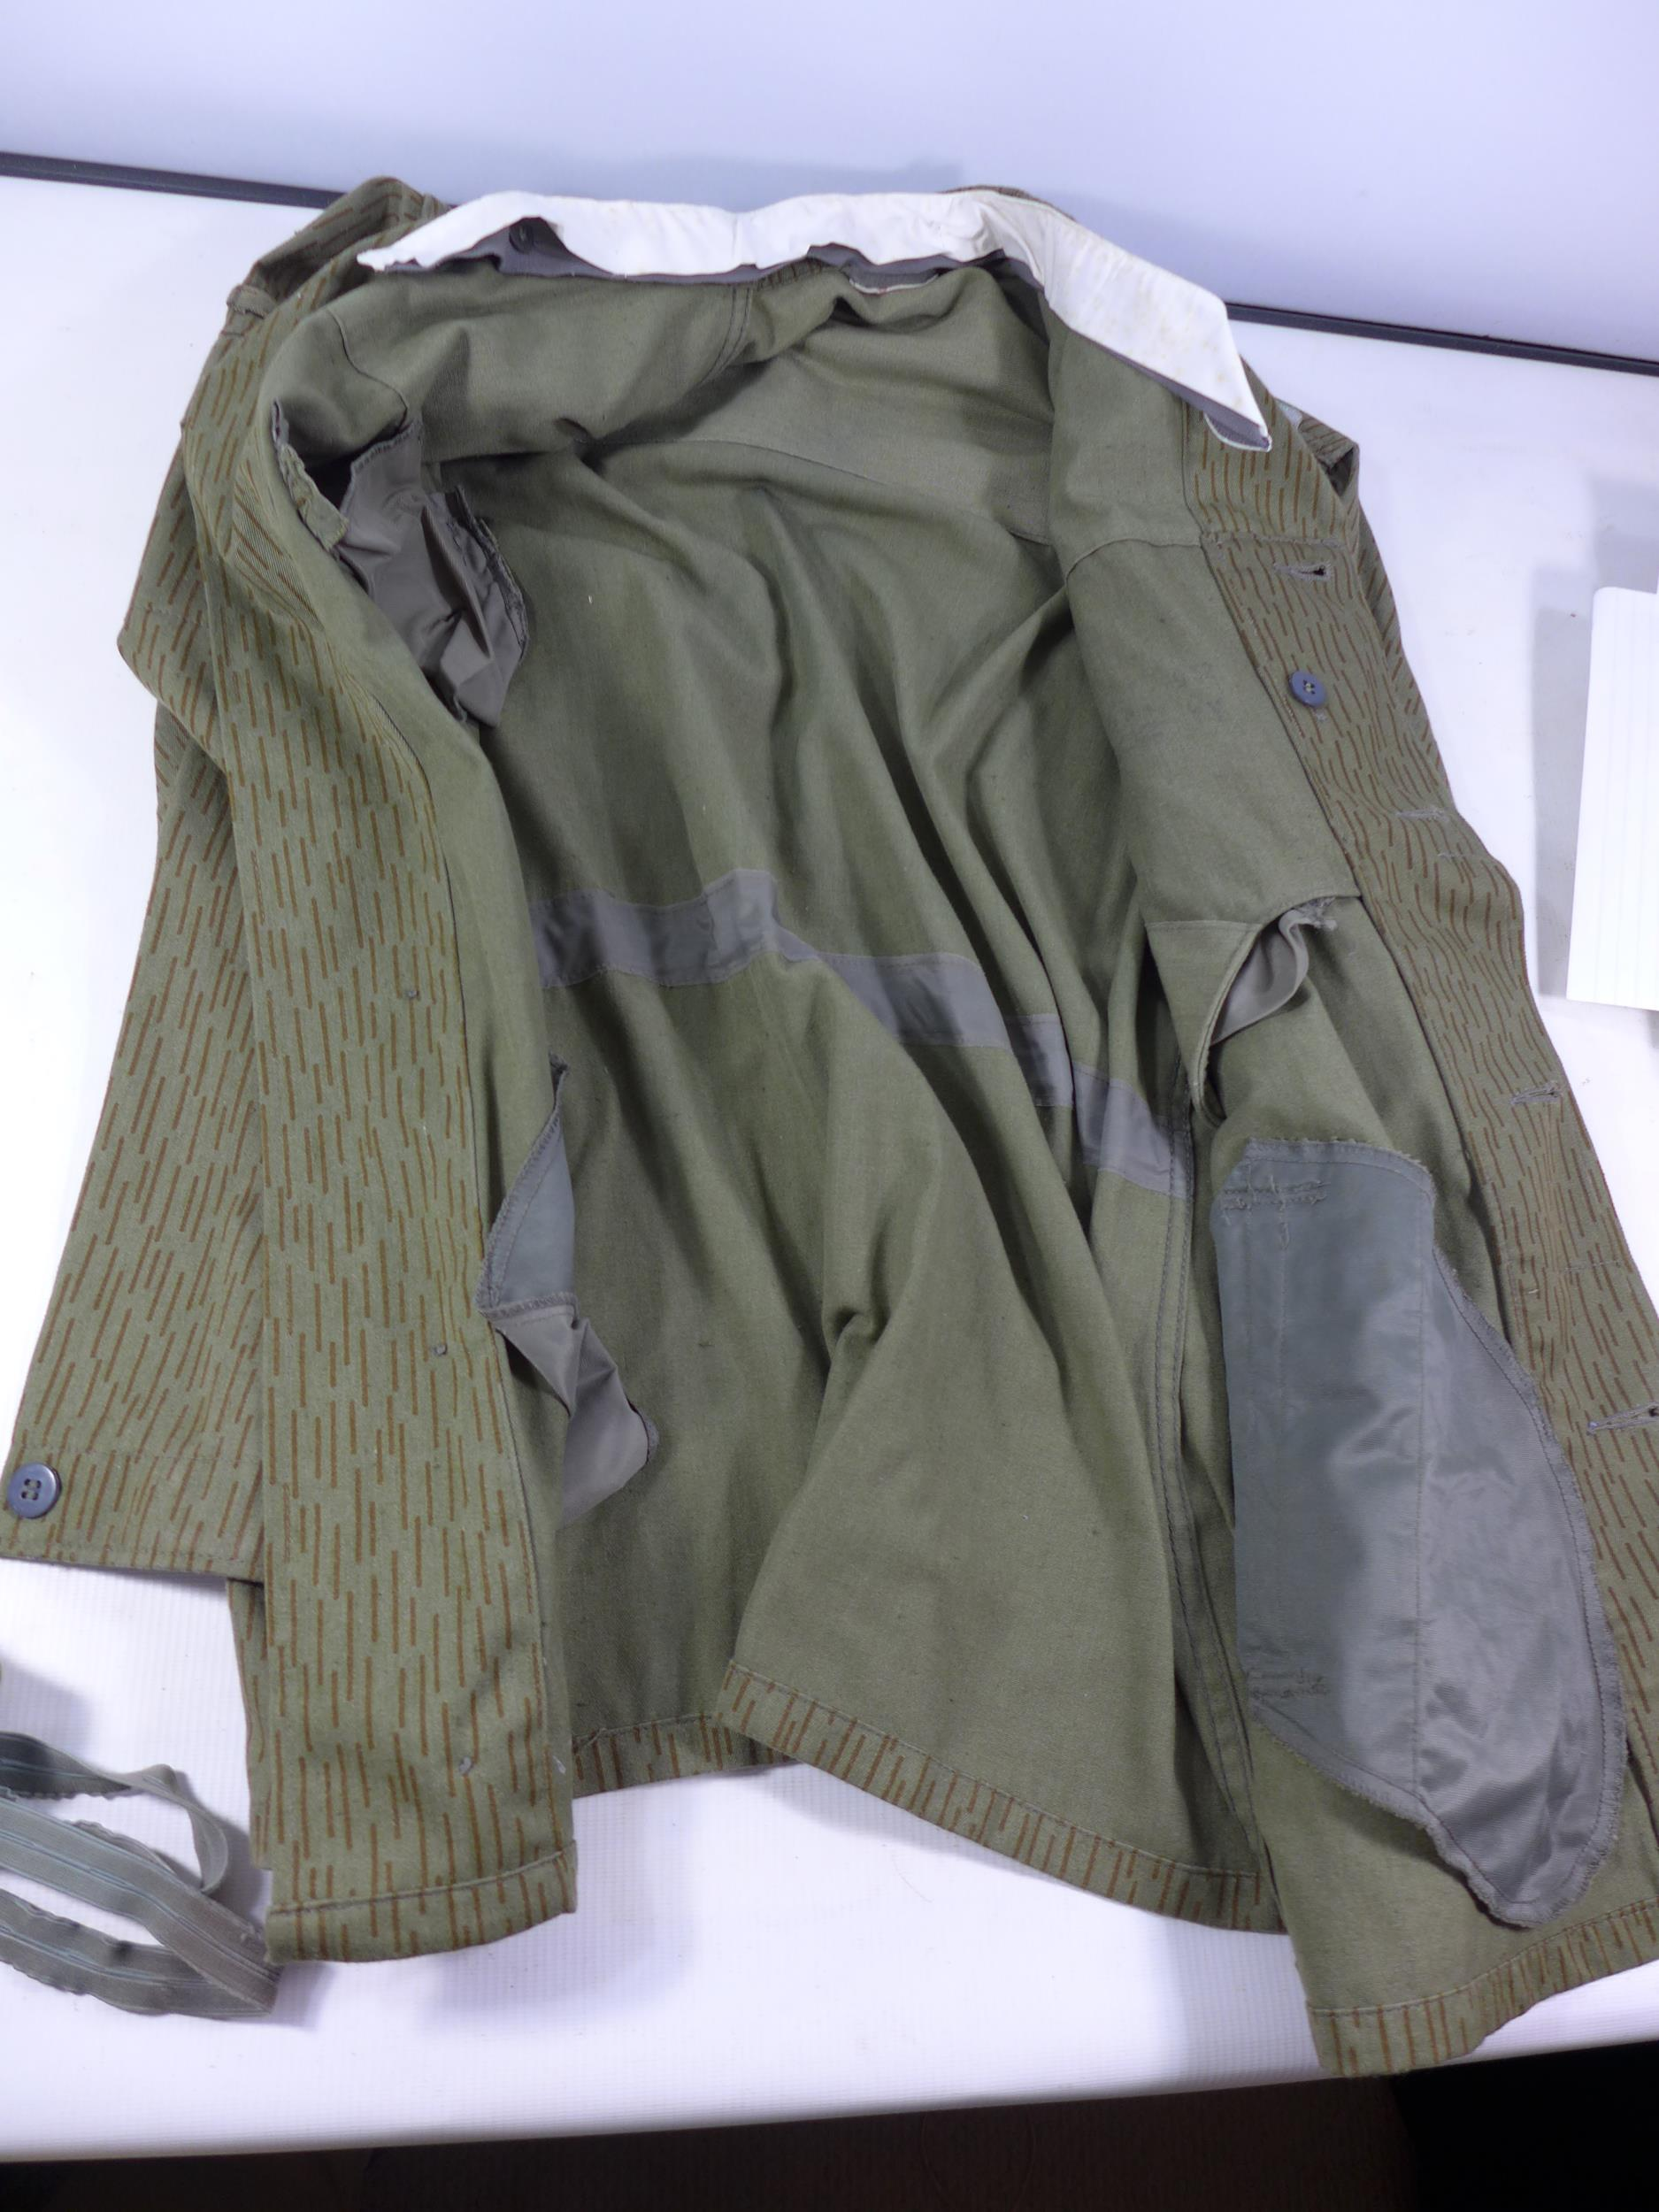 A POST WWII UNIFORM, PROBABLY GERMAN COMPRISING OF A JACKET AND TROUSERS - Image 2 of 6